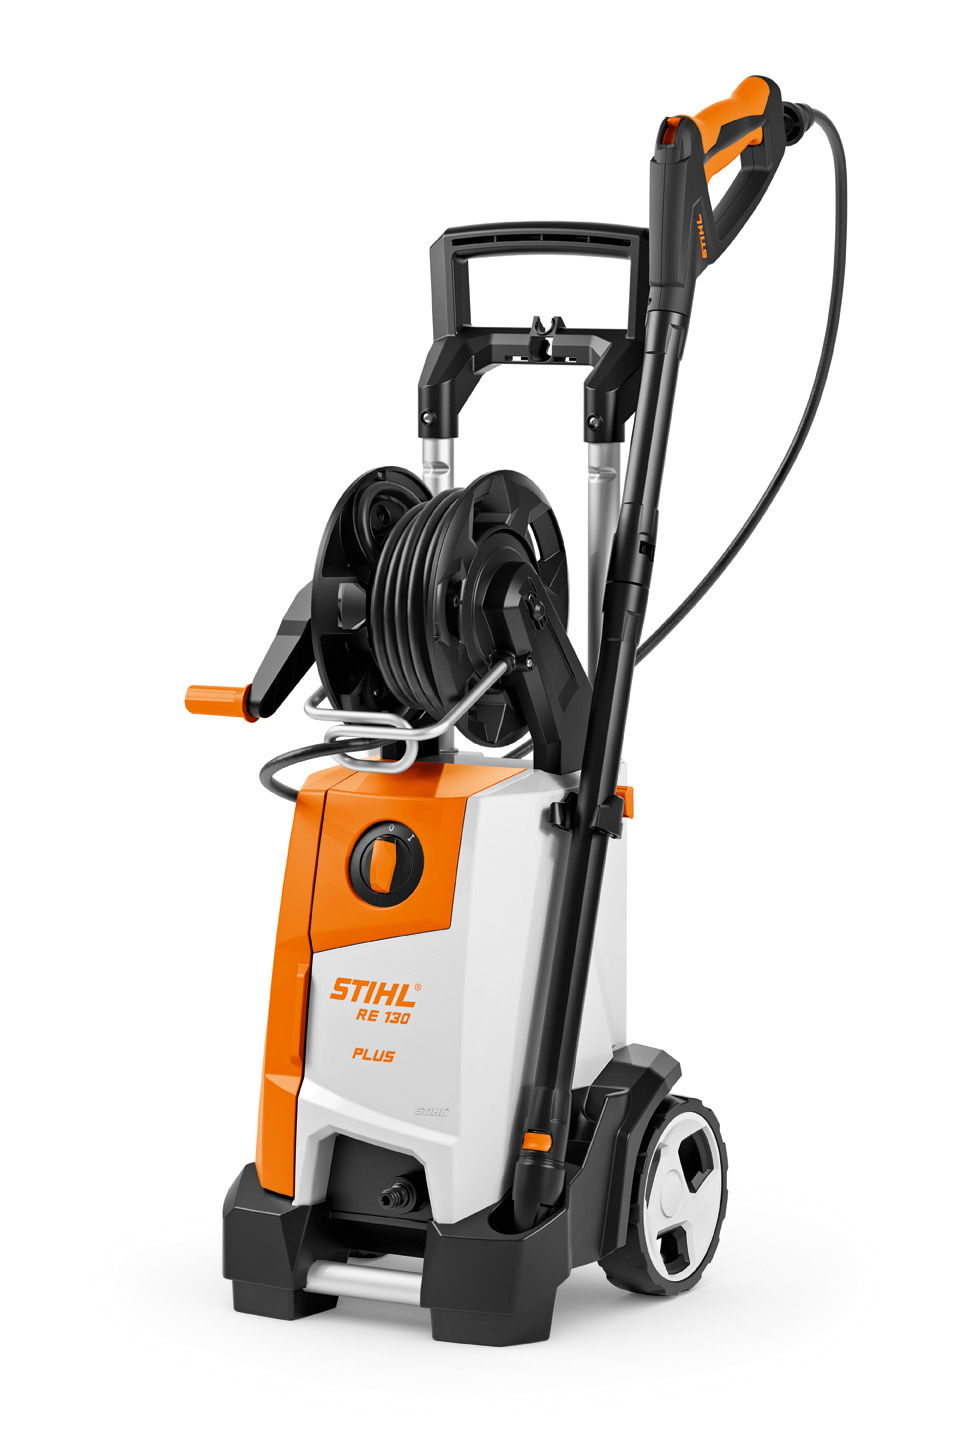 RE 130 PLUS - HIGH-PERFORMANCE PRESSURE WASHER